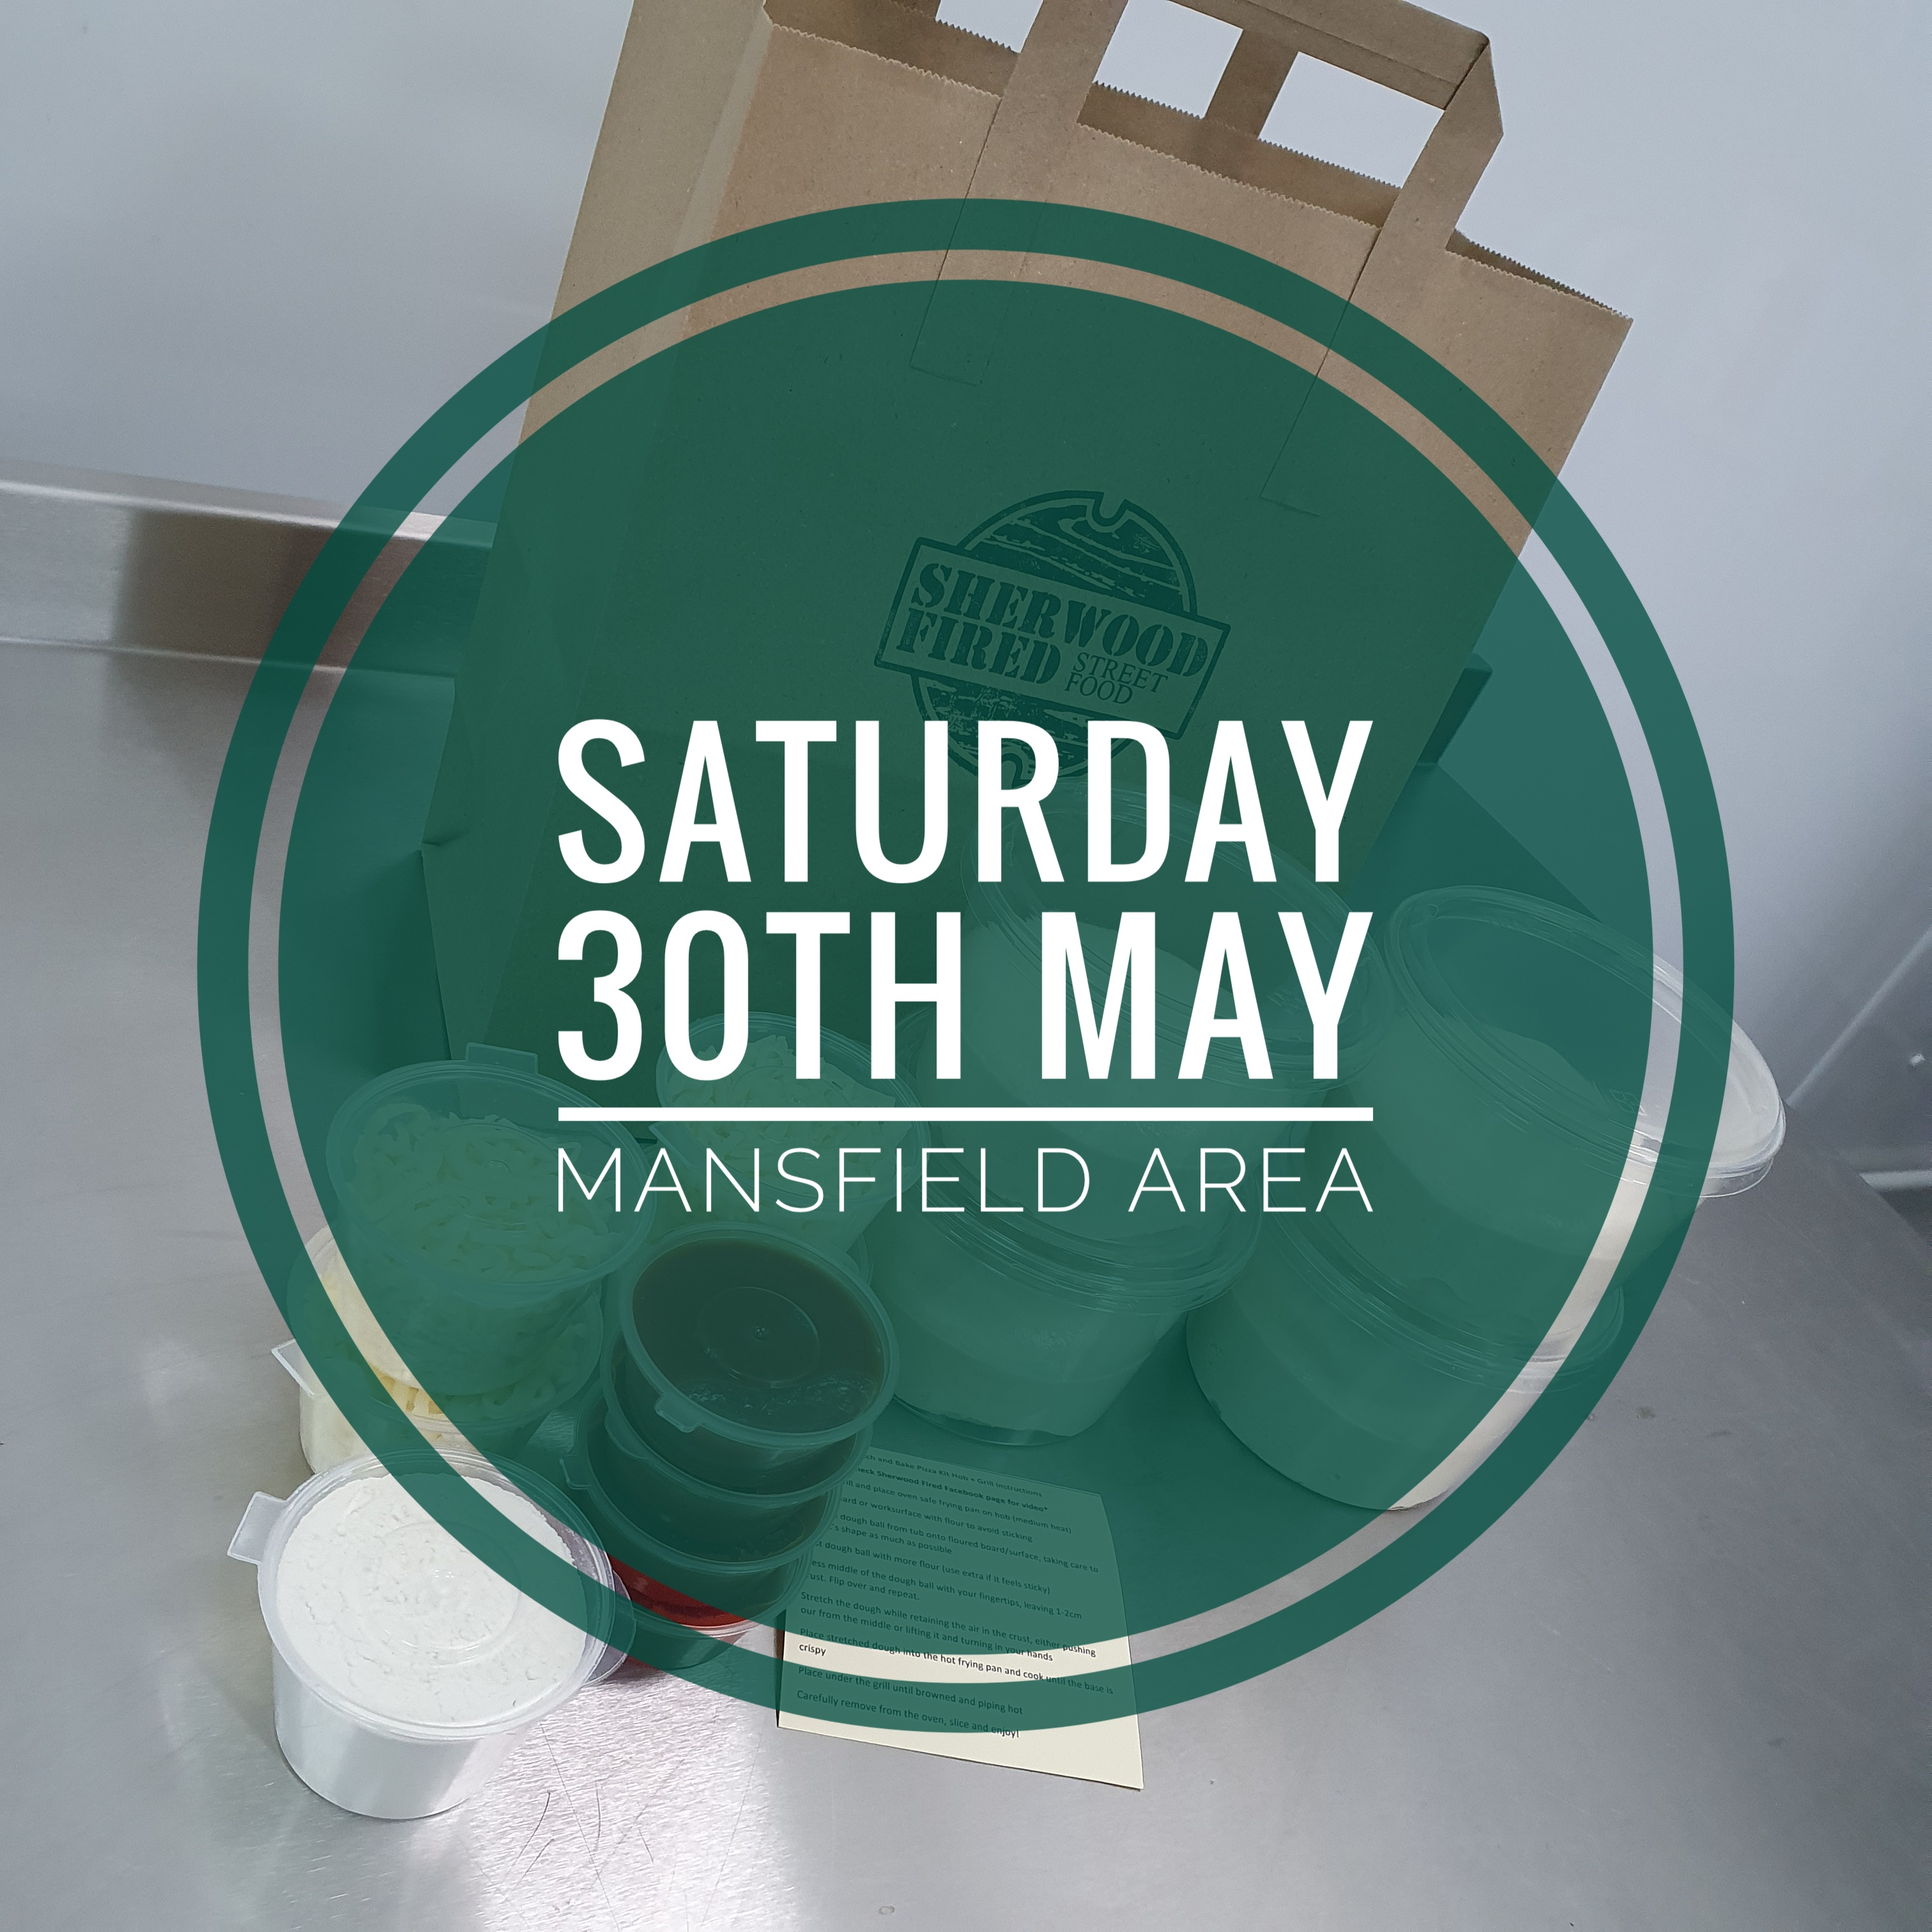 Sourdough Stretch and Bake Pizza Kit (SATURDAY 30th MAY - MANSFIELD AREA)